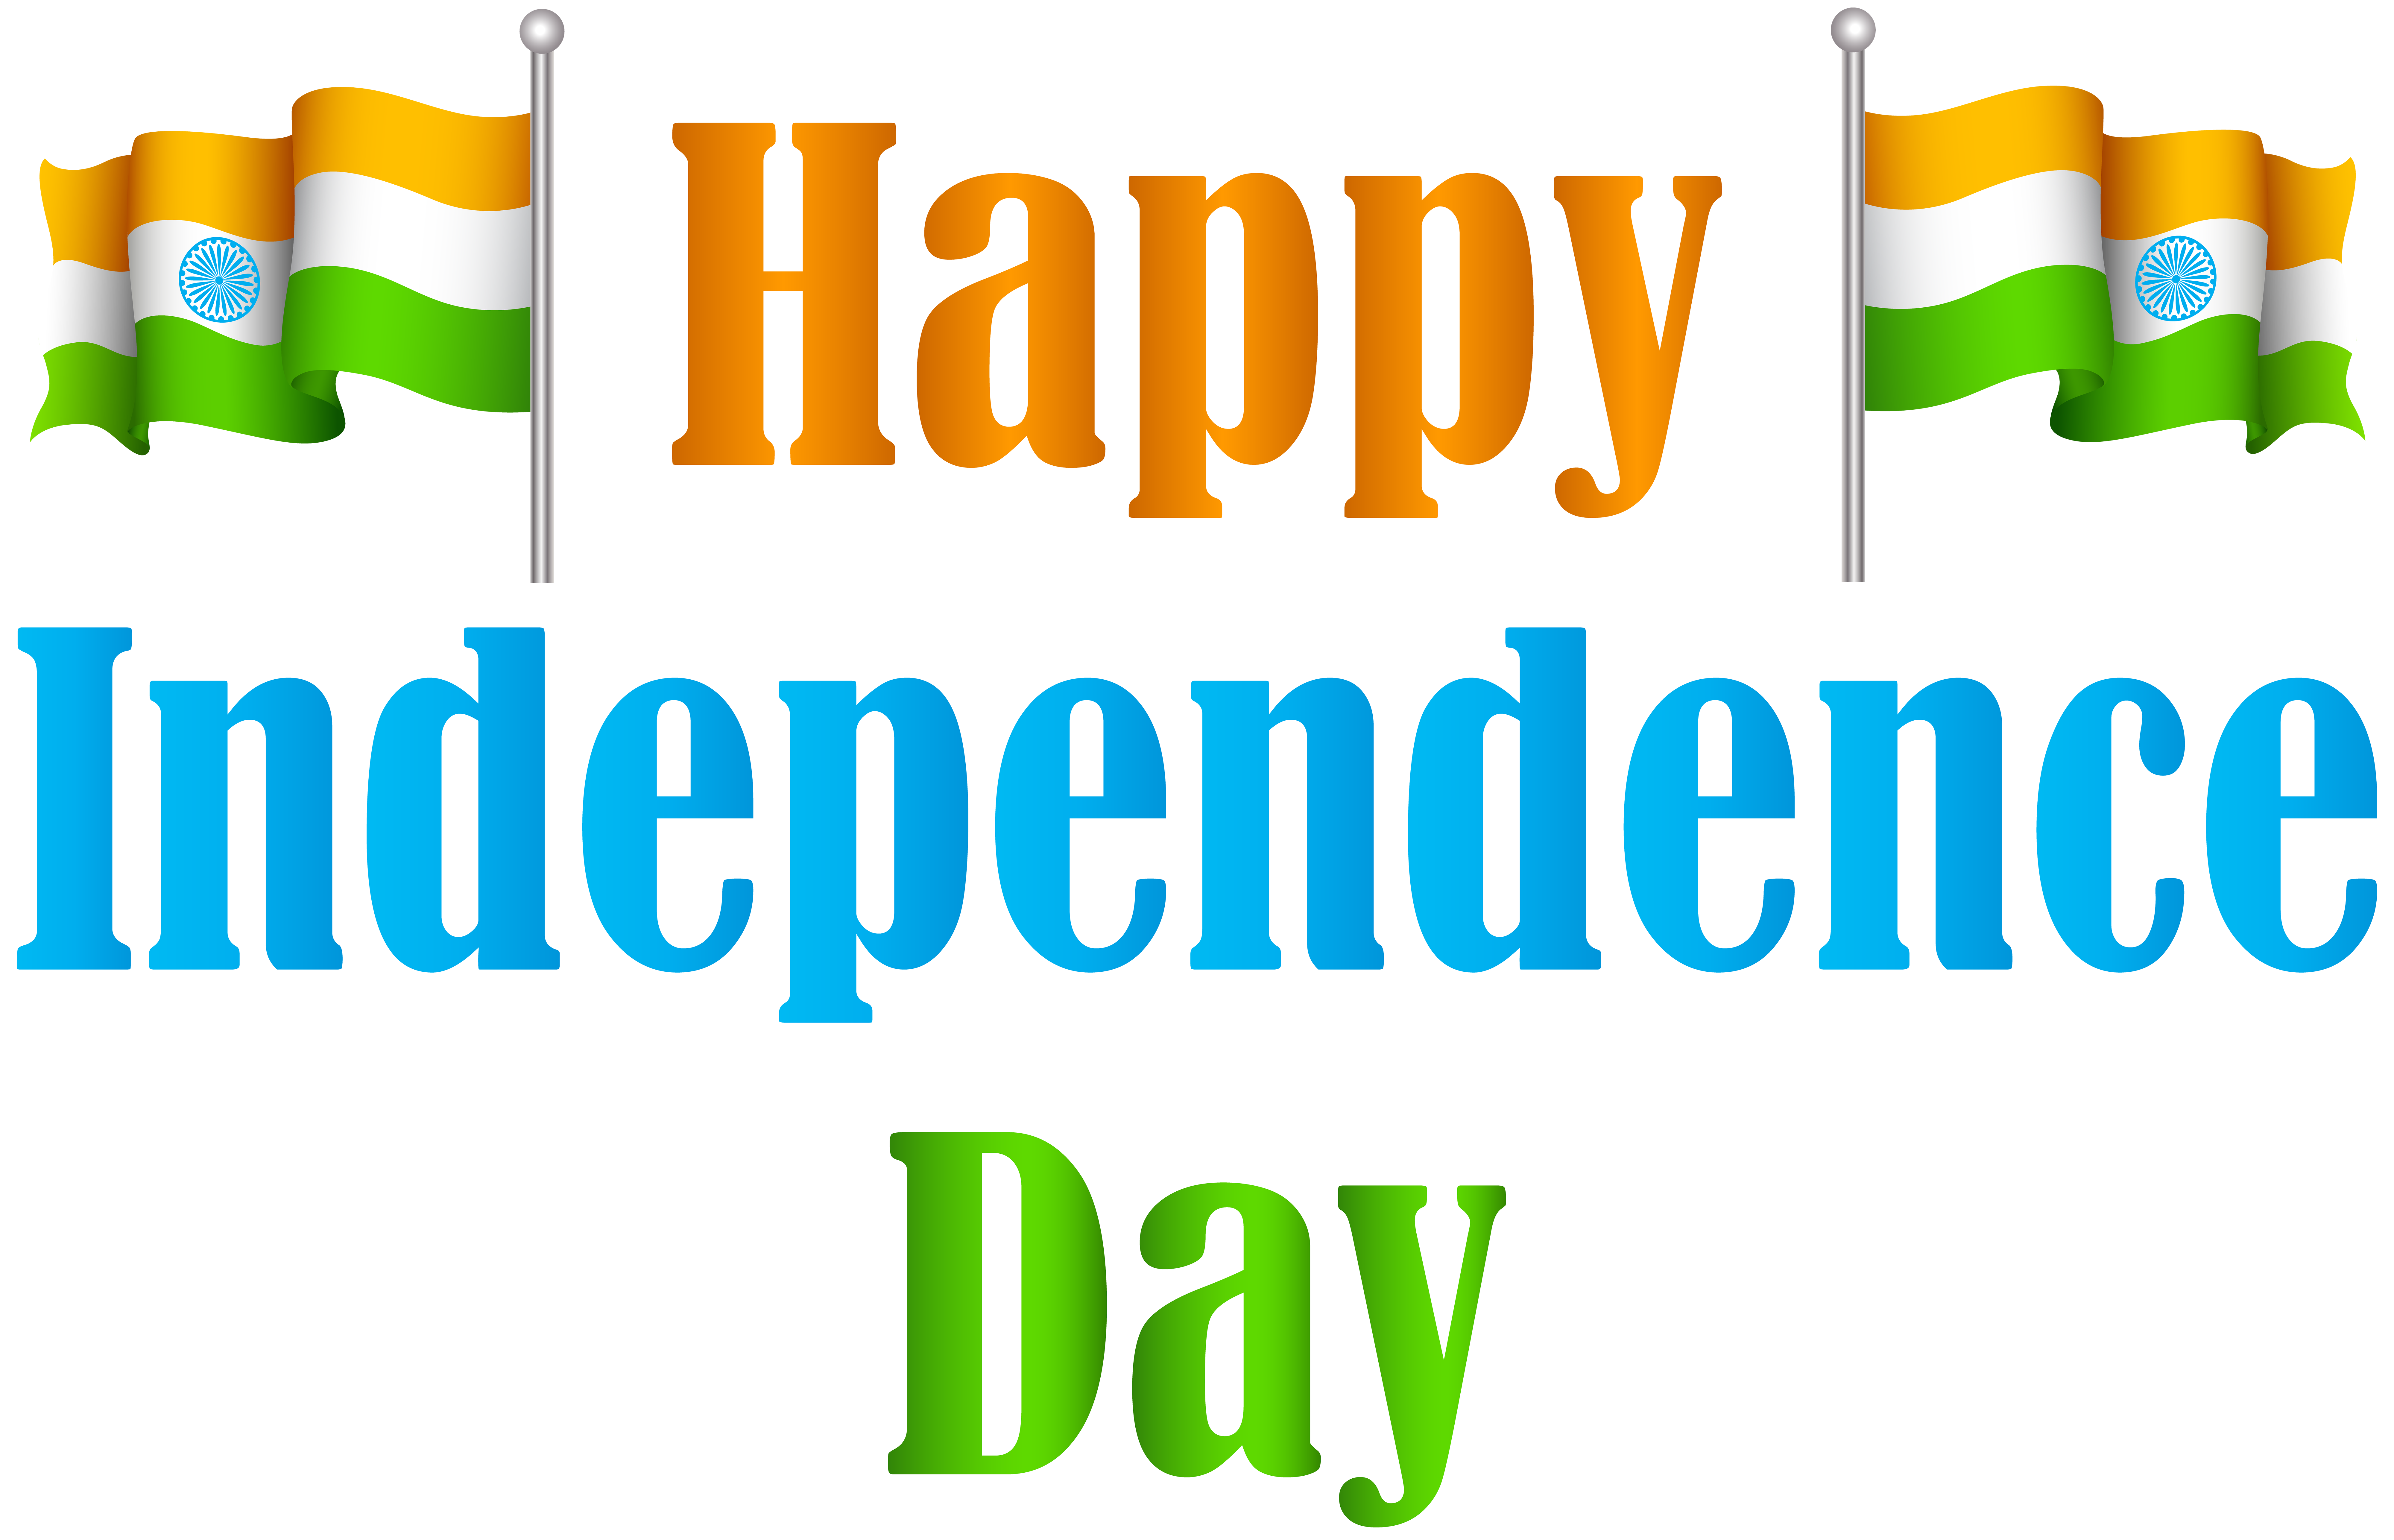 8000x5146 India Happy Independence Day Transparent Png Clip Art Image